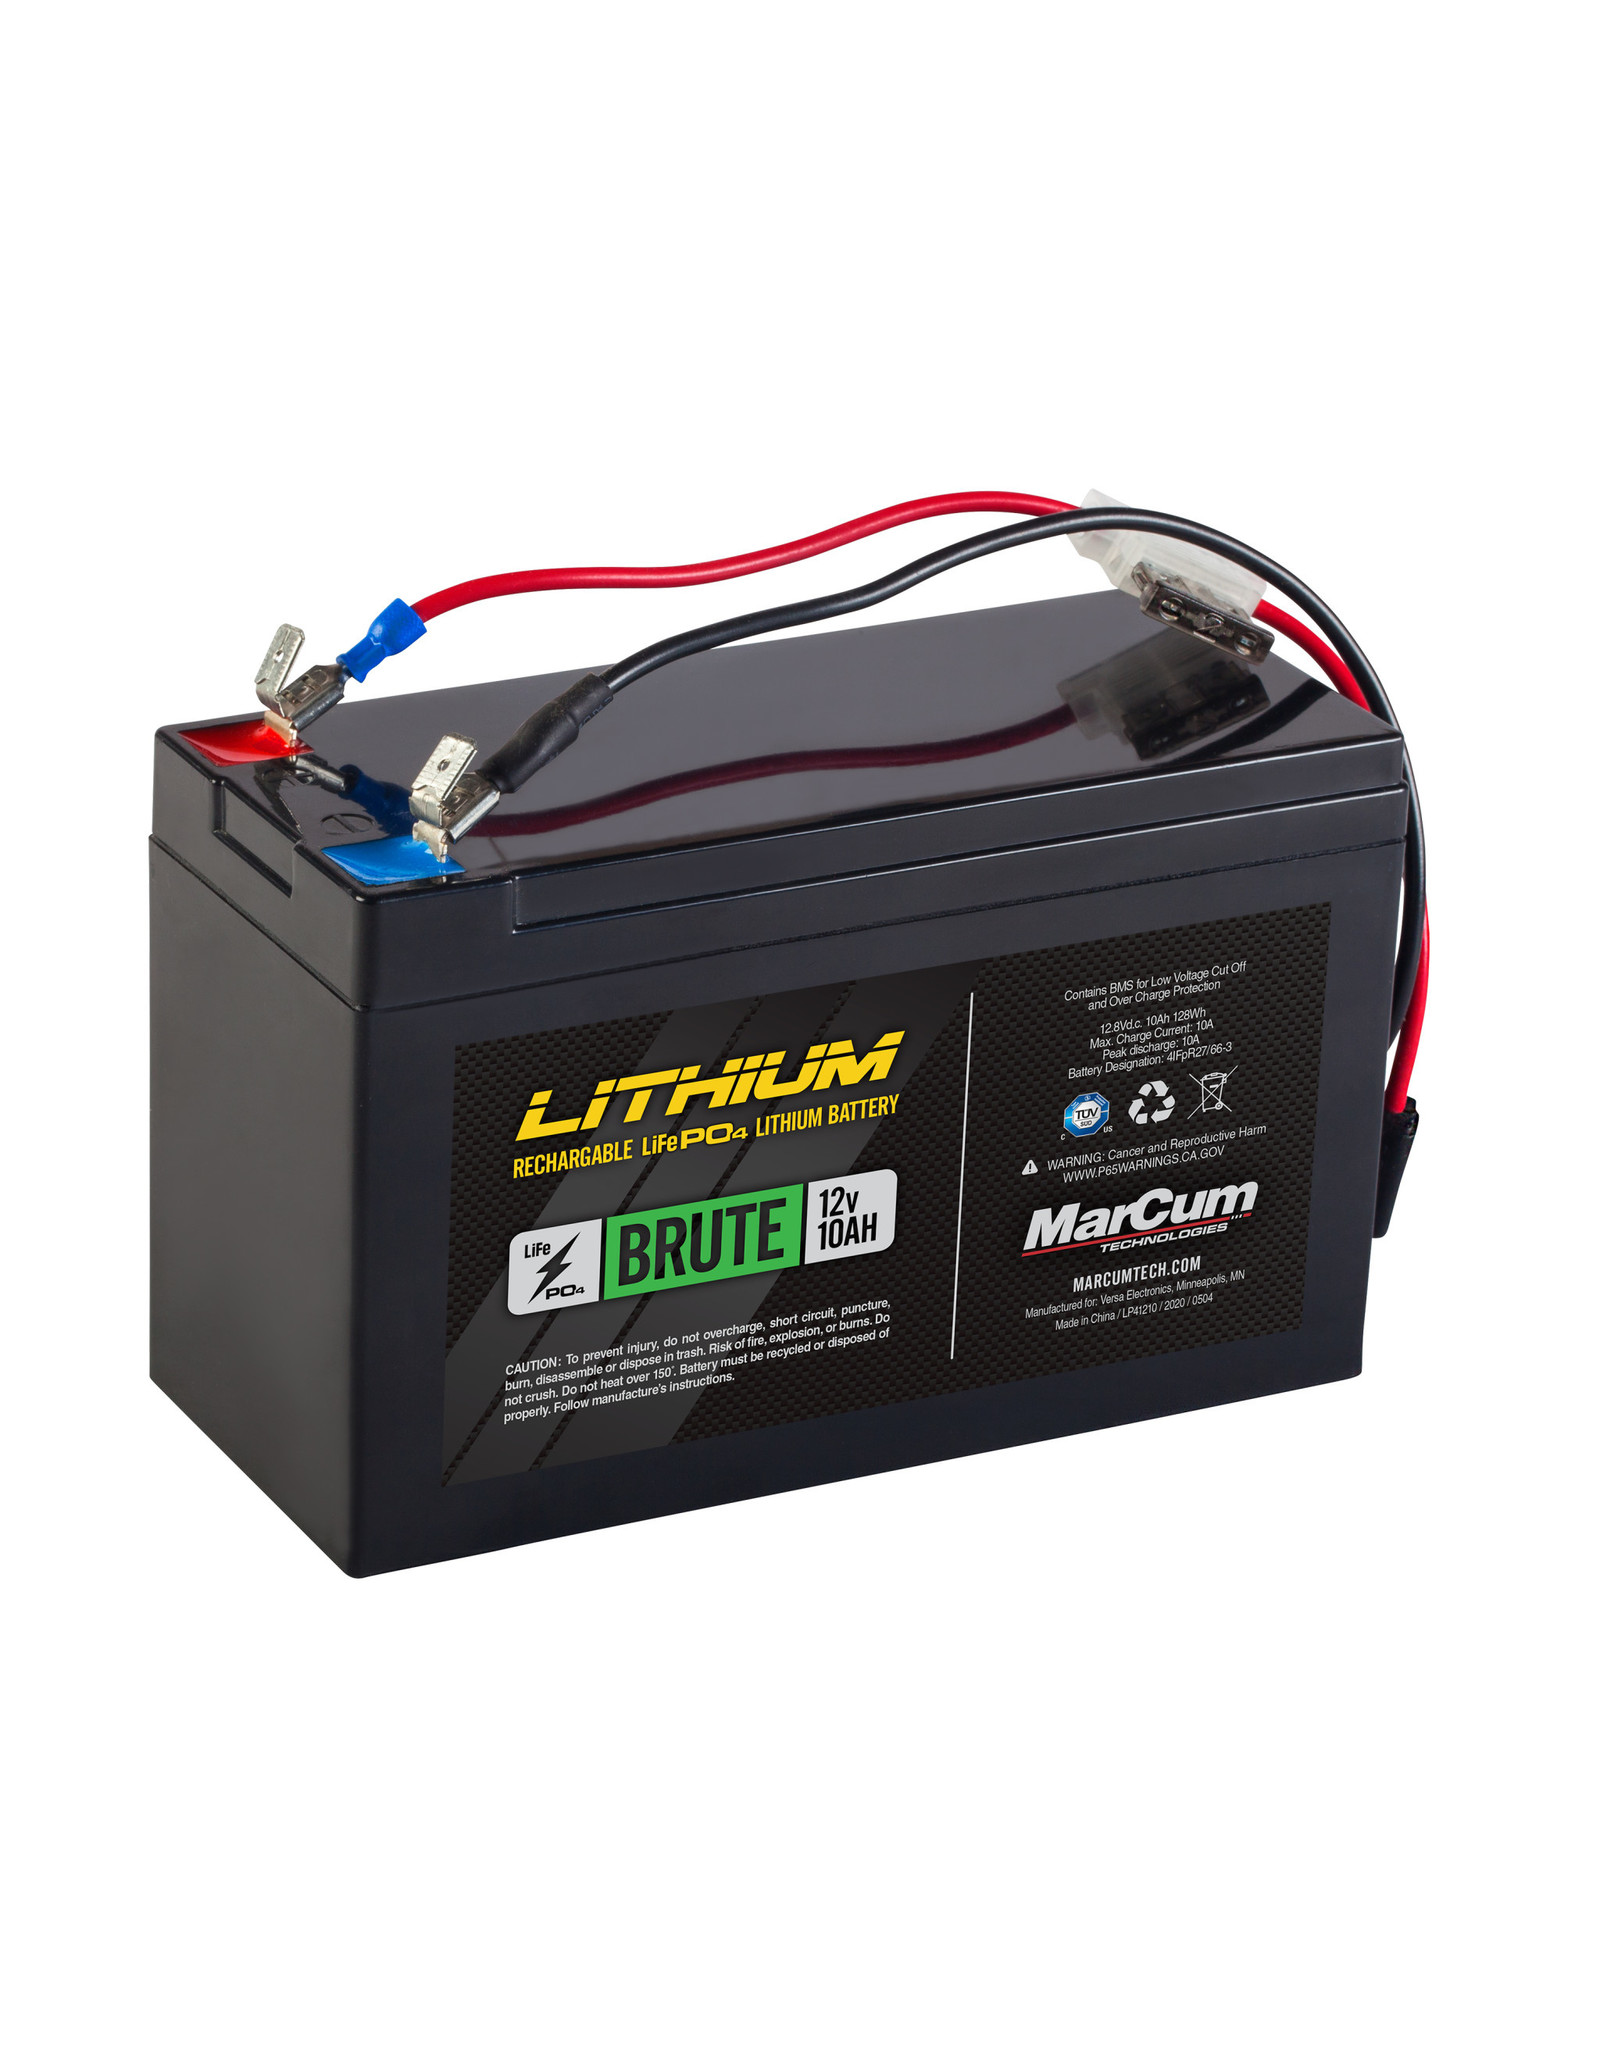 MarCum Technologies MarCum Brute 12V 10AH LiFePO4  Battery and 3amp Charge